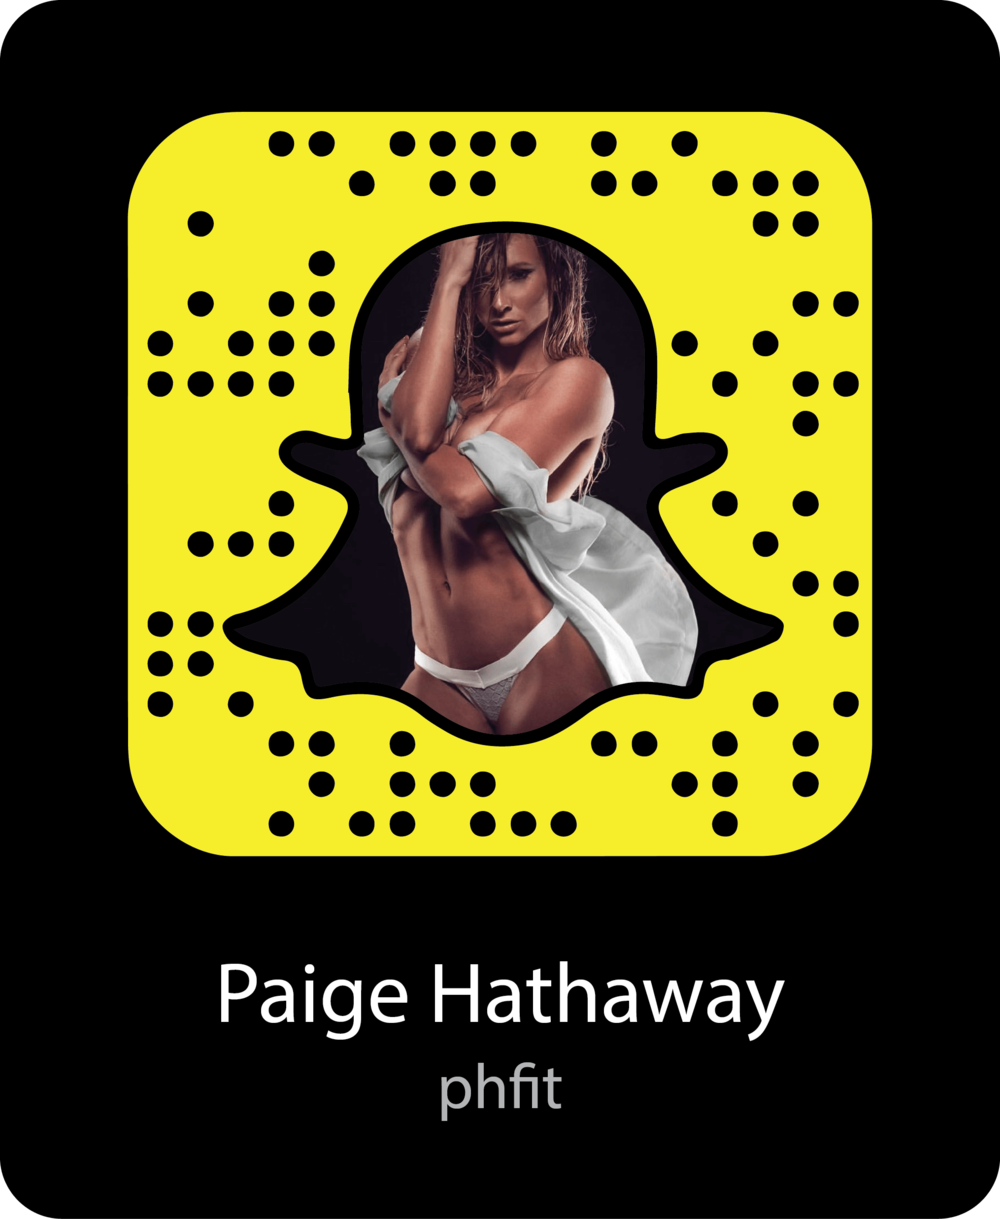 paige-hathaway-phfit-fitness-snapchat-snapcode.png